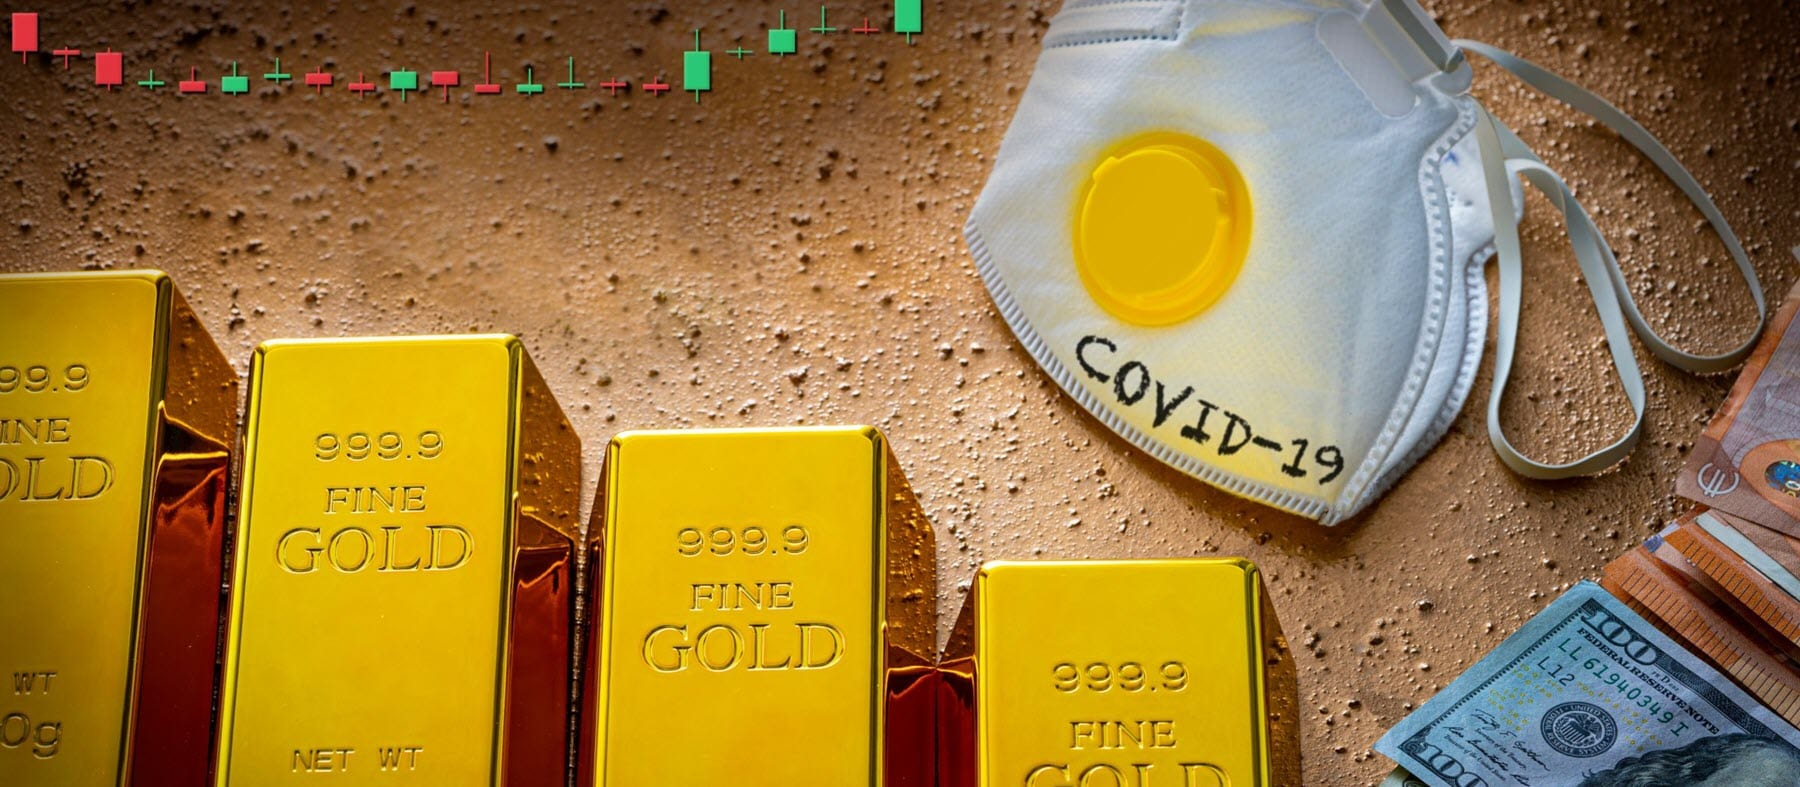 Gold Price During the COVID-19 Pandemic